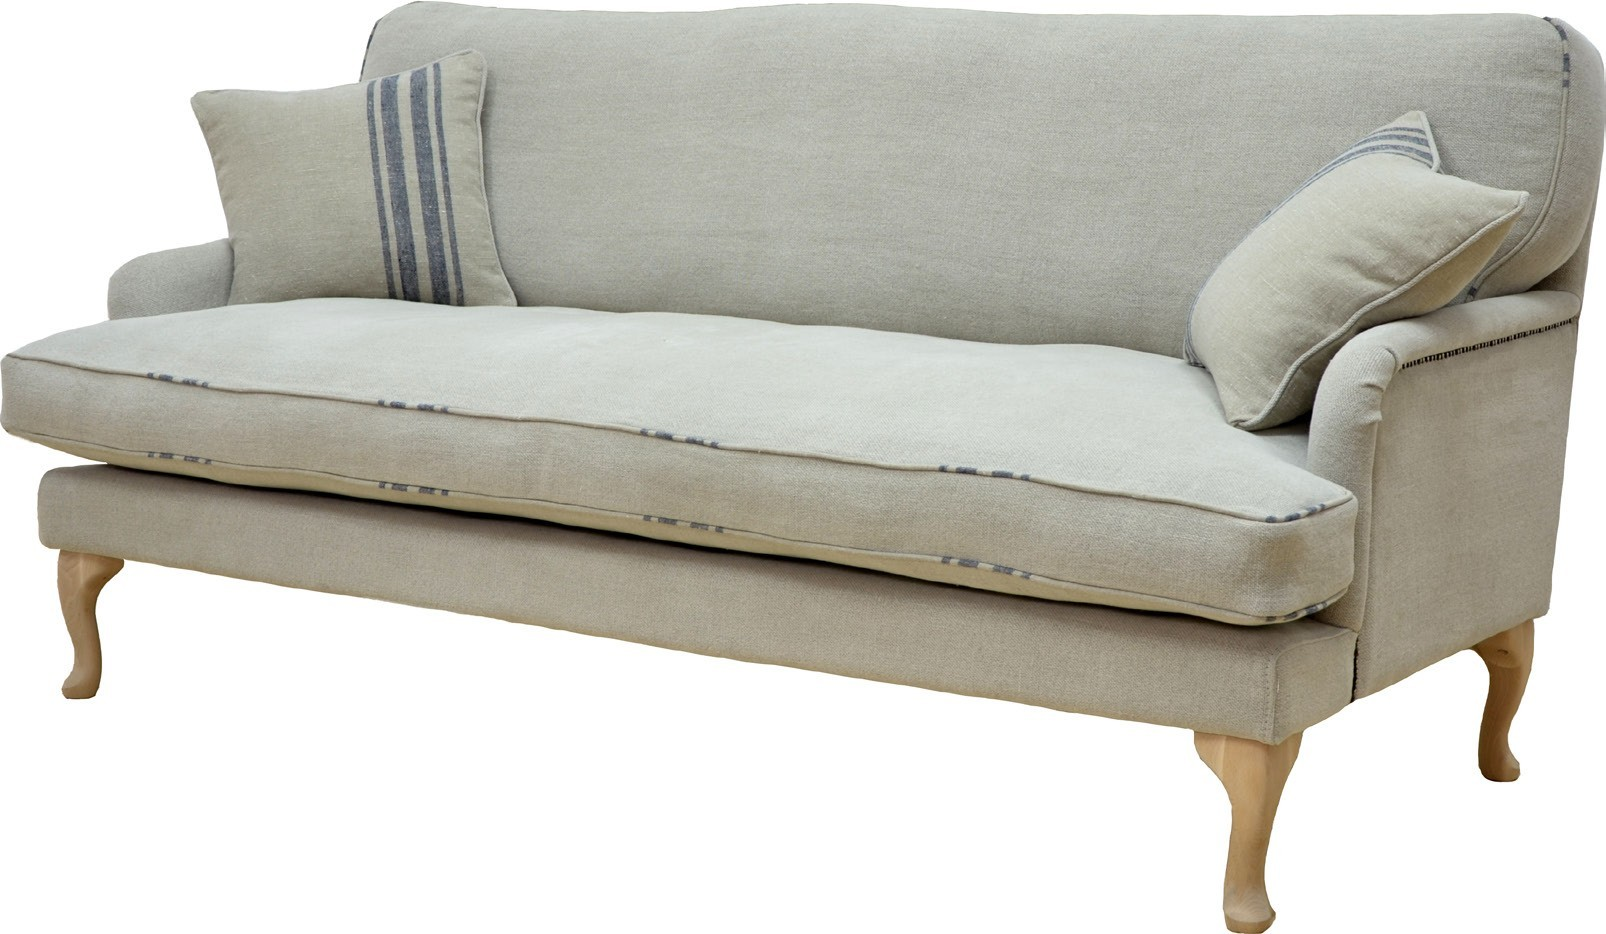 ... Schmales Sofa Landhausstil Royal Primavera Hier Klicken For Sofa  Landhausstil Schweiz ...